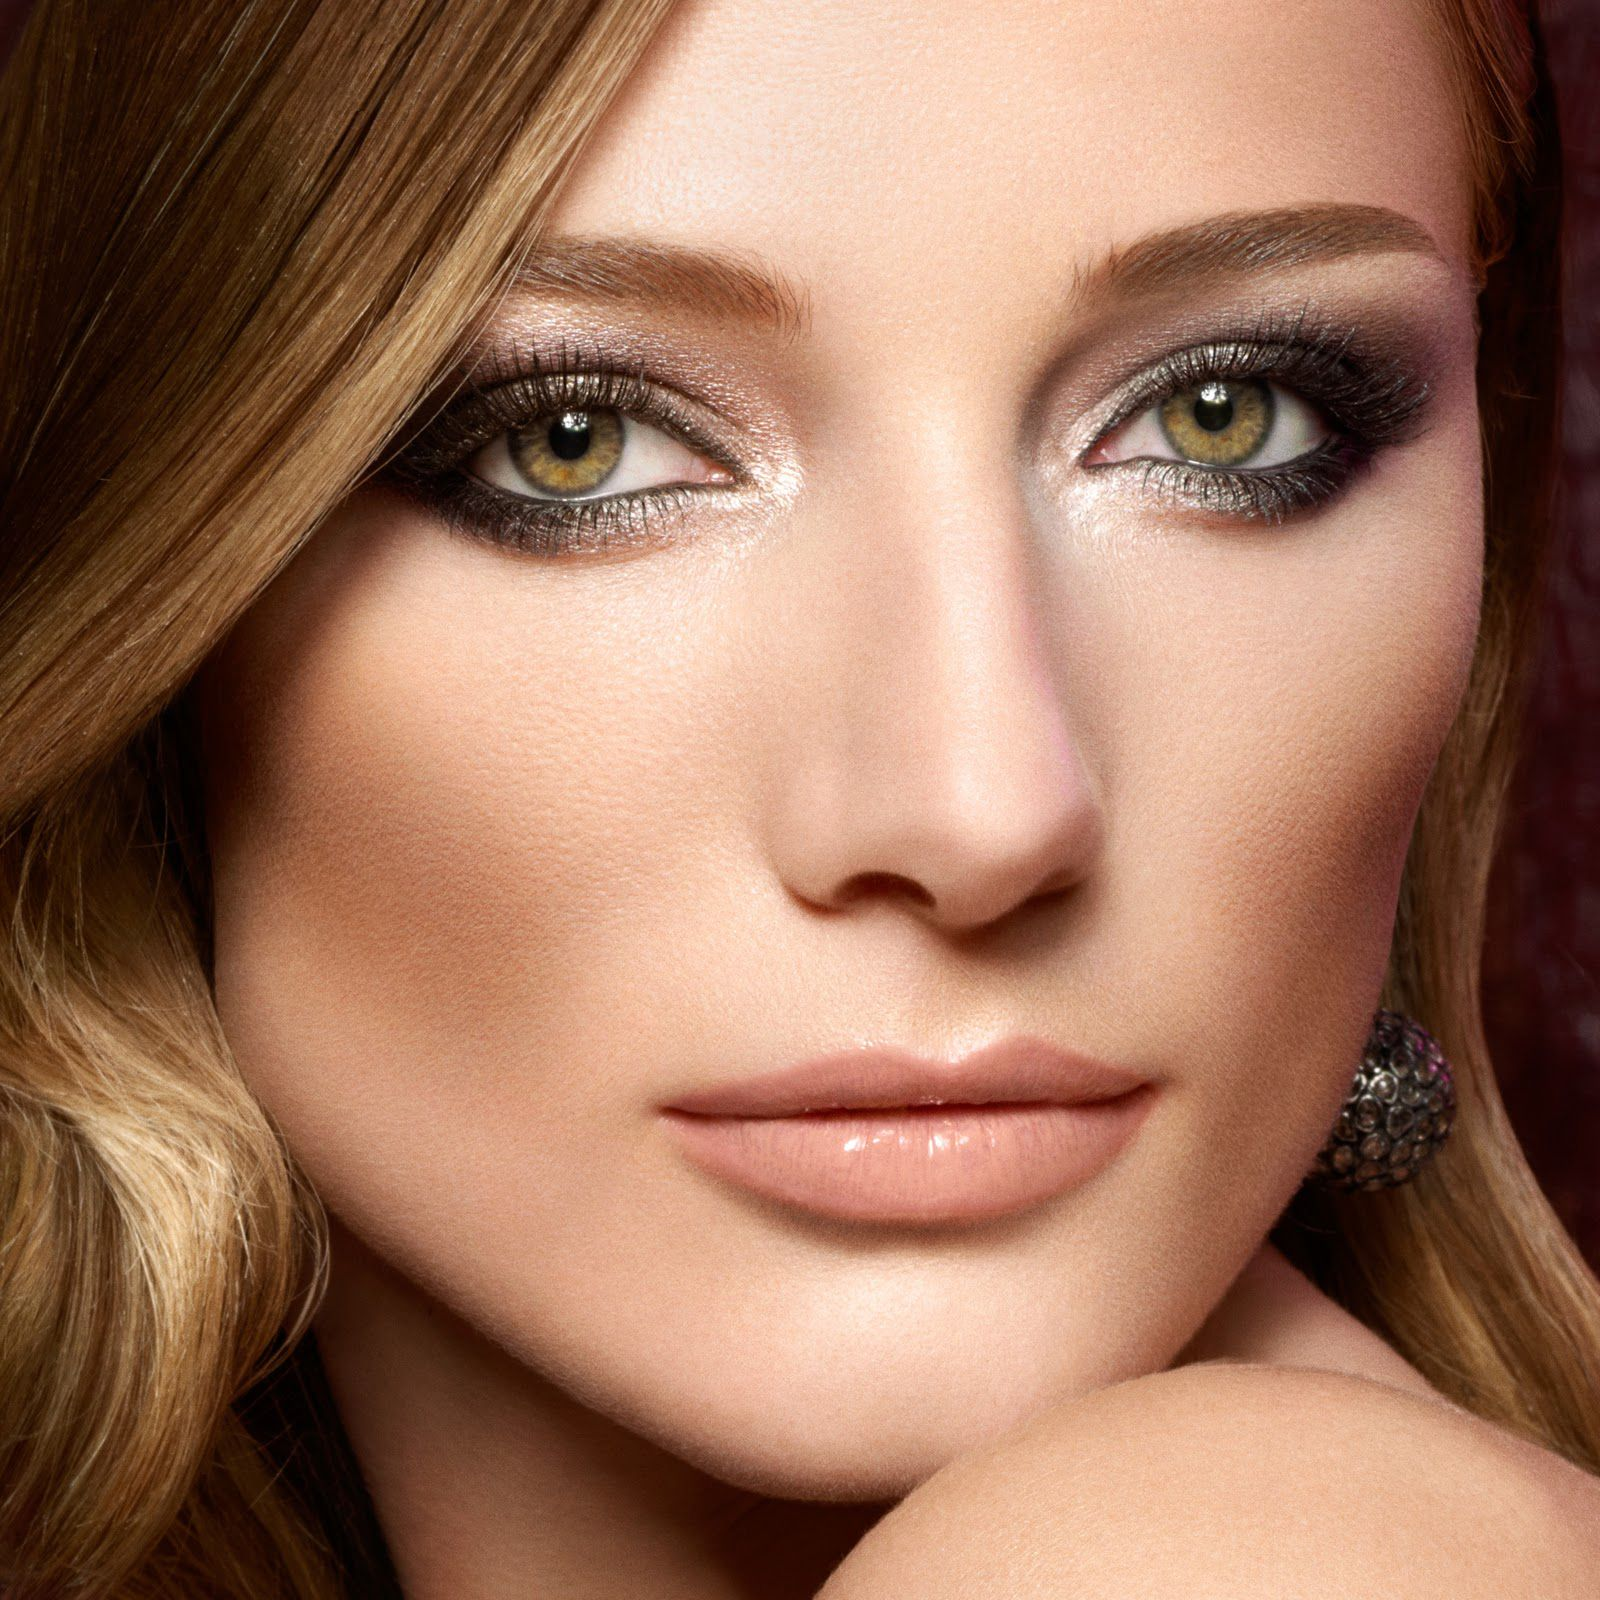 Best makeup tips for females with brown eyes | All the fun details ...